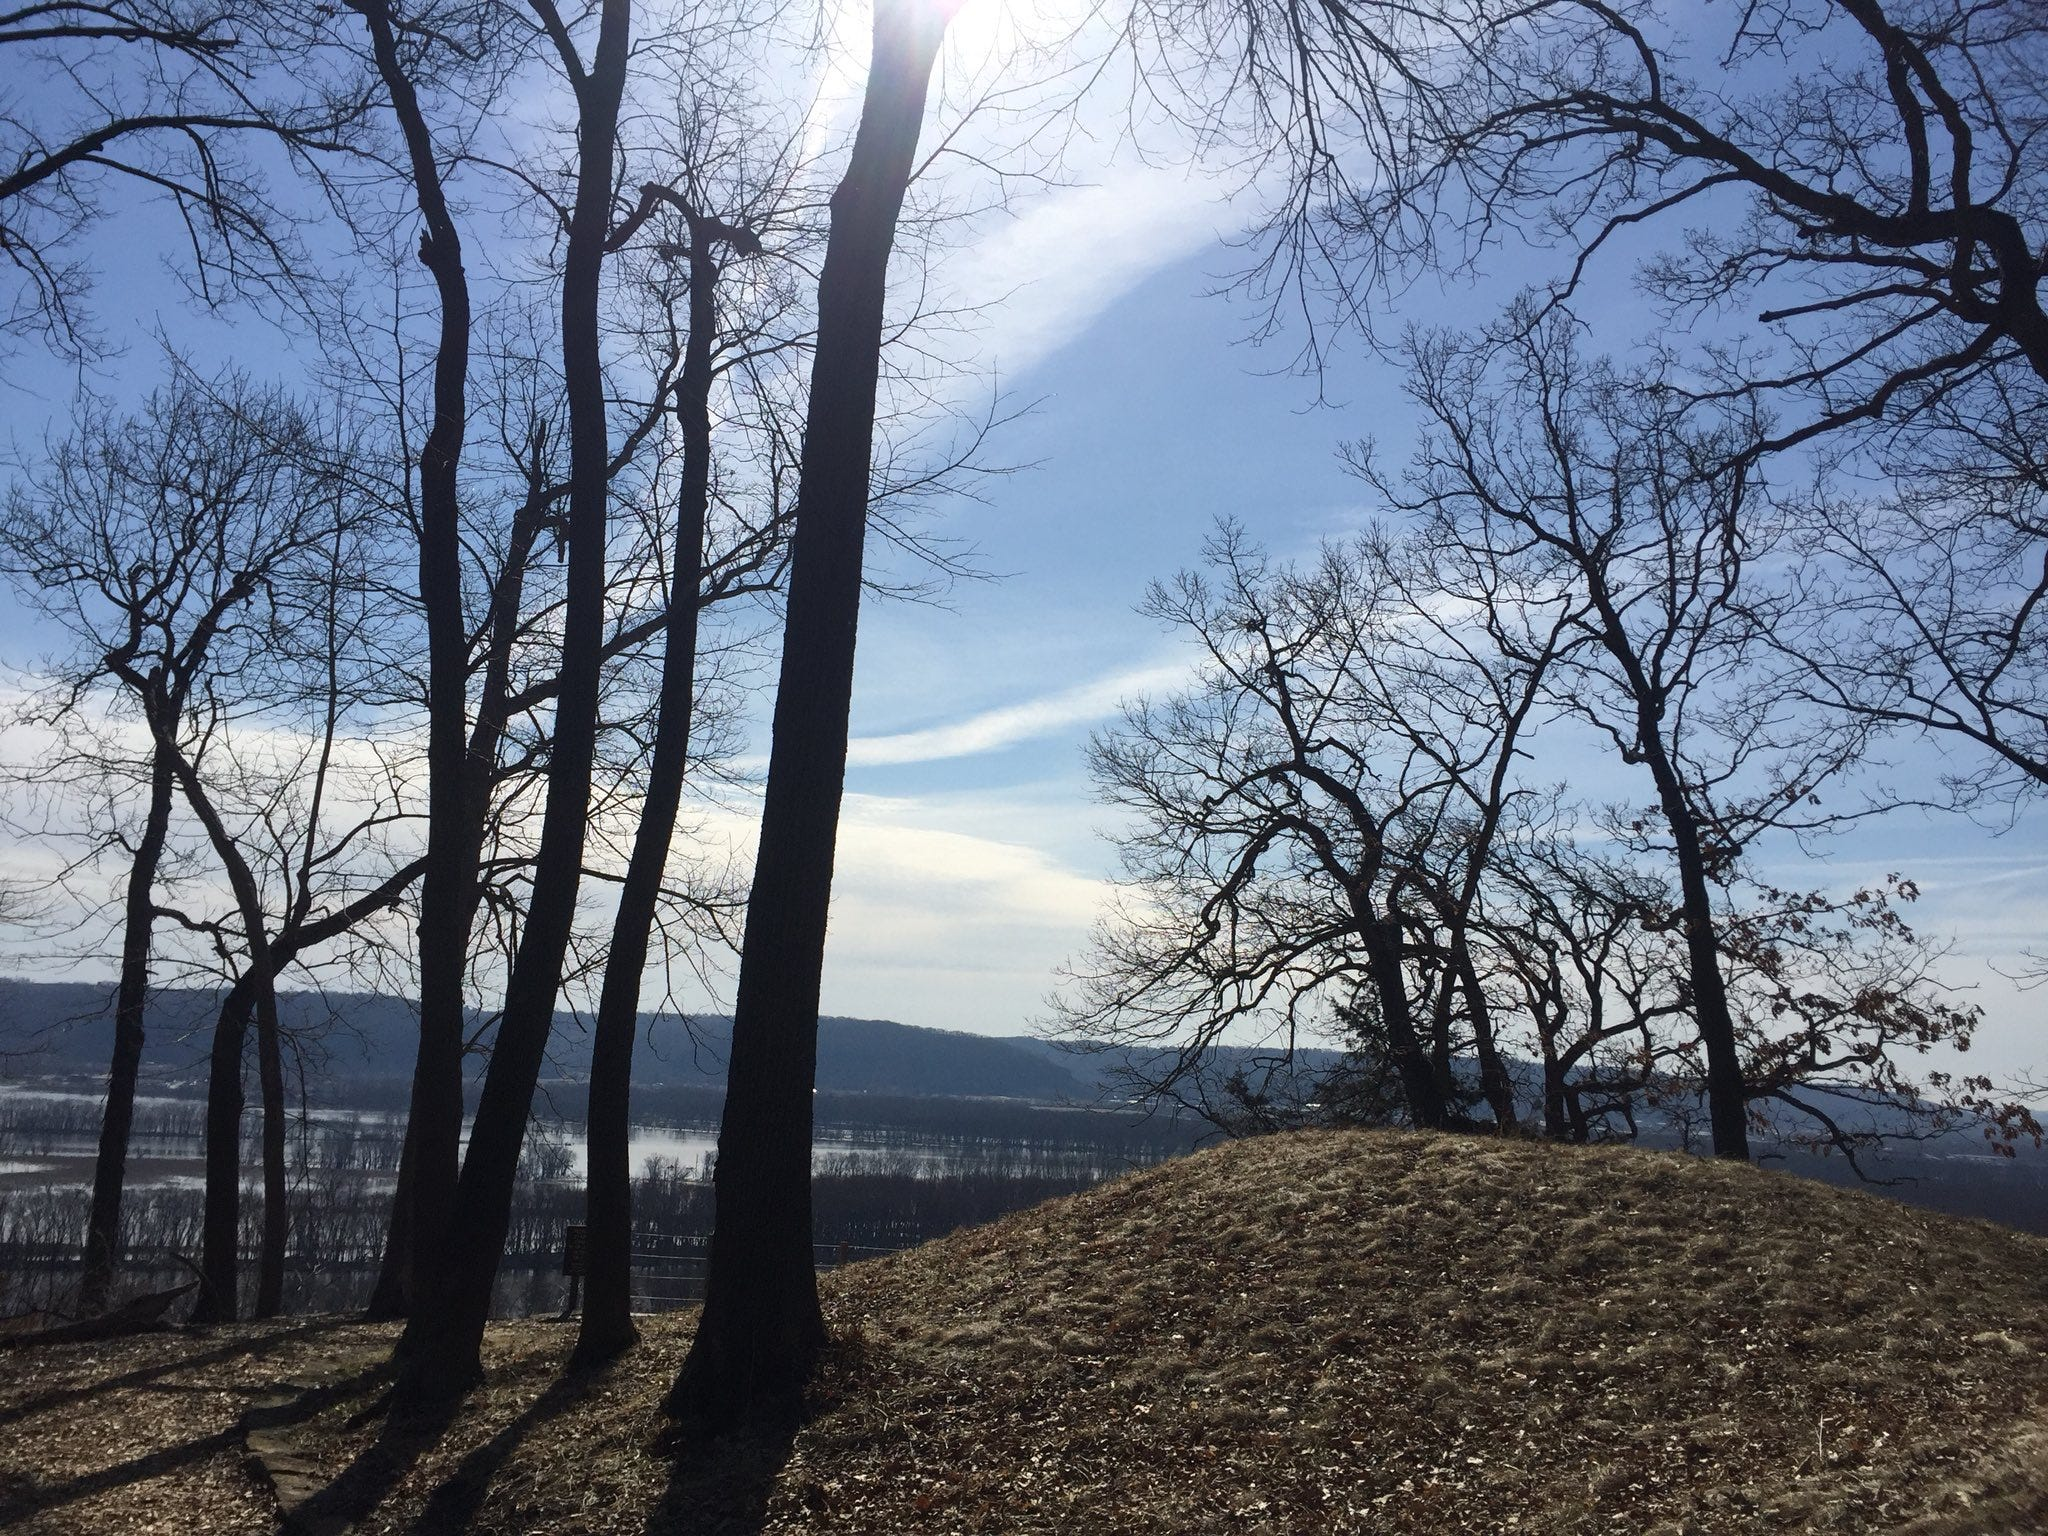 A burial mound is shown at Effigy Mounds National Monument on April 23, 2018.